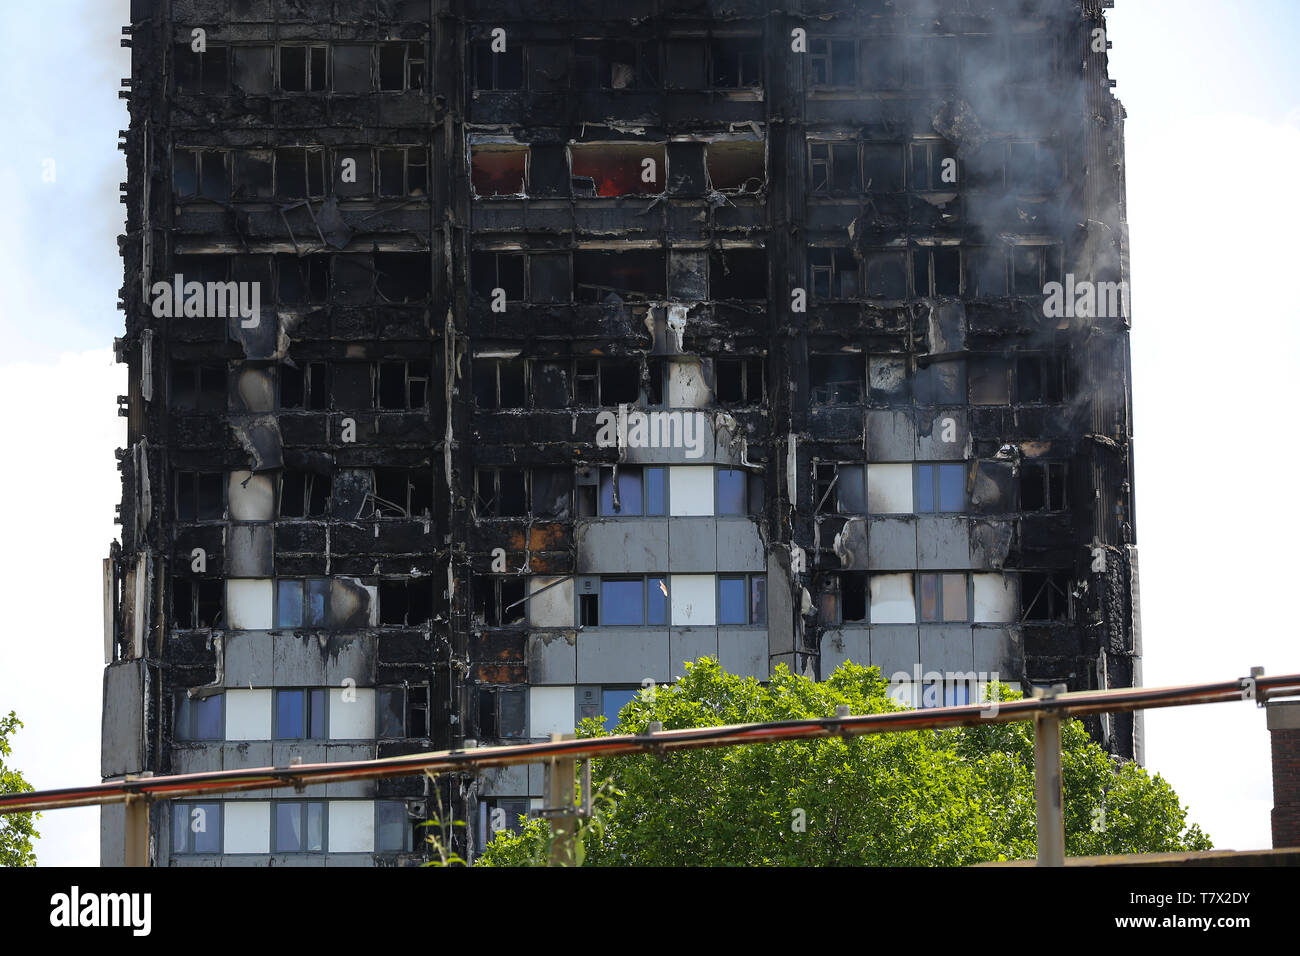 24-storey Grenfell Tower block of flats seen on fire in North Kensington, West London. On 14 June 2017, a fire broke out in the 24-storey Grenfell Tower block of flats in North Kensington, West London where 72 people died, more than 70 others were injured and 223 people escaped. The UK Government is to fund an estimated £200 million to replacement of unsafe Grenfell style cladding on around 170 high-rise private residential buildings after private building owners failed to take action. Communities Secretary James Brokenshire said inaction from building owners had compelled the government to ac - Stock Image